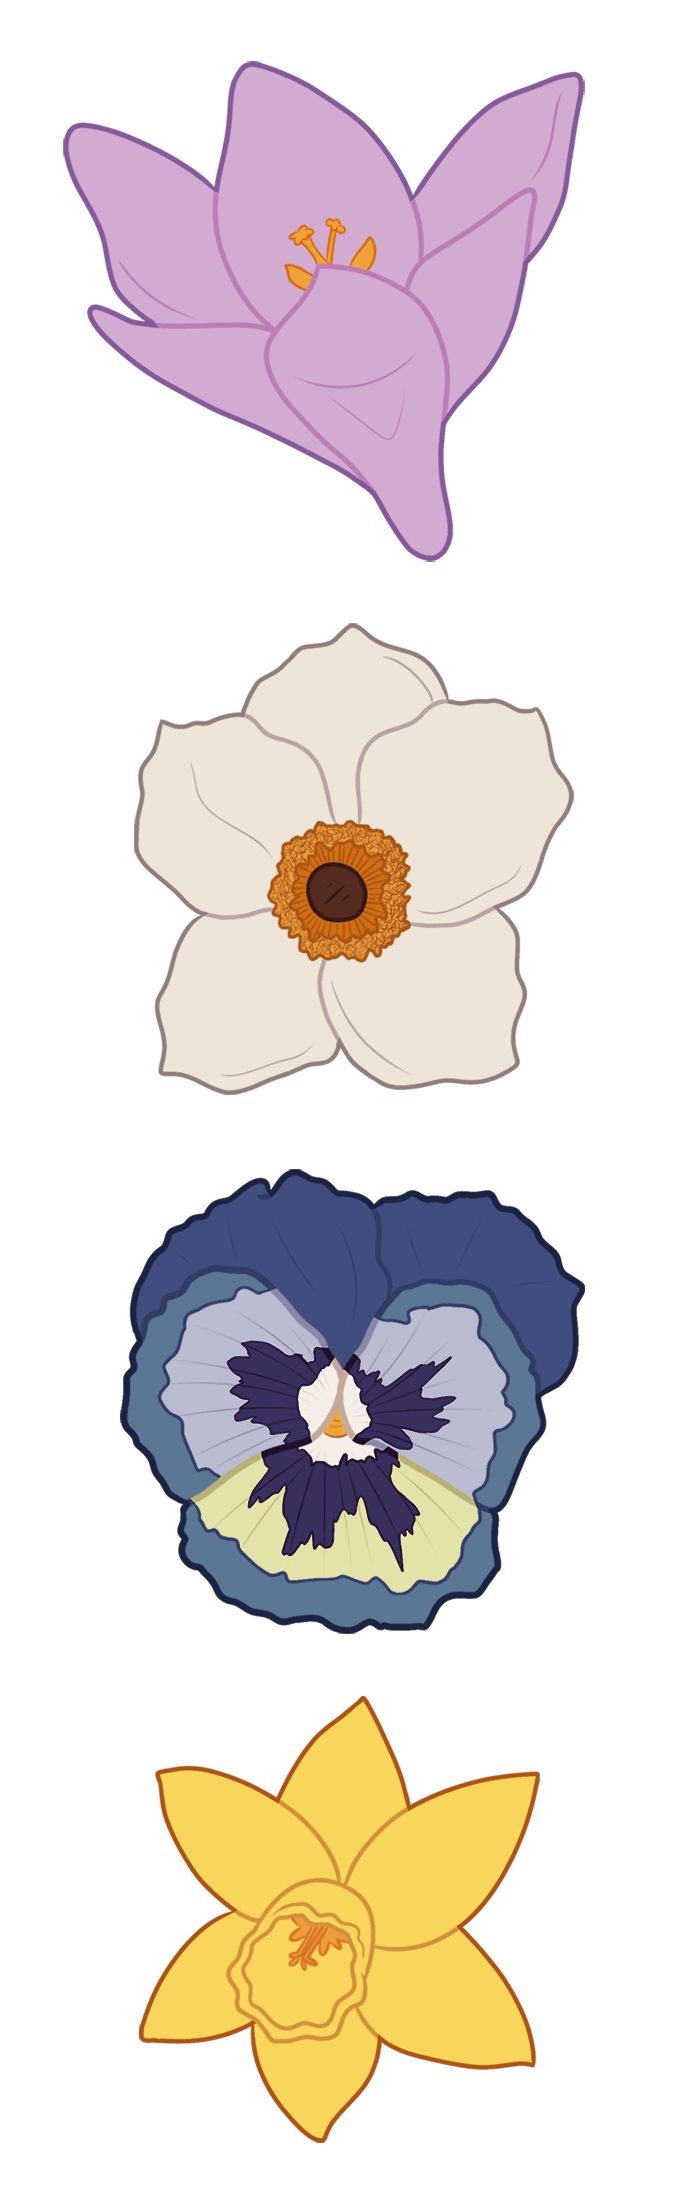 A little sneak peak of a new clip art set I'm working on! It's going to be a set of spring flowers in pastel colors, each flower getting a couple of different color variations. #spring #flowers #clipart #pastel